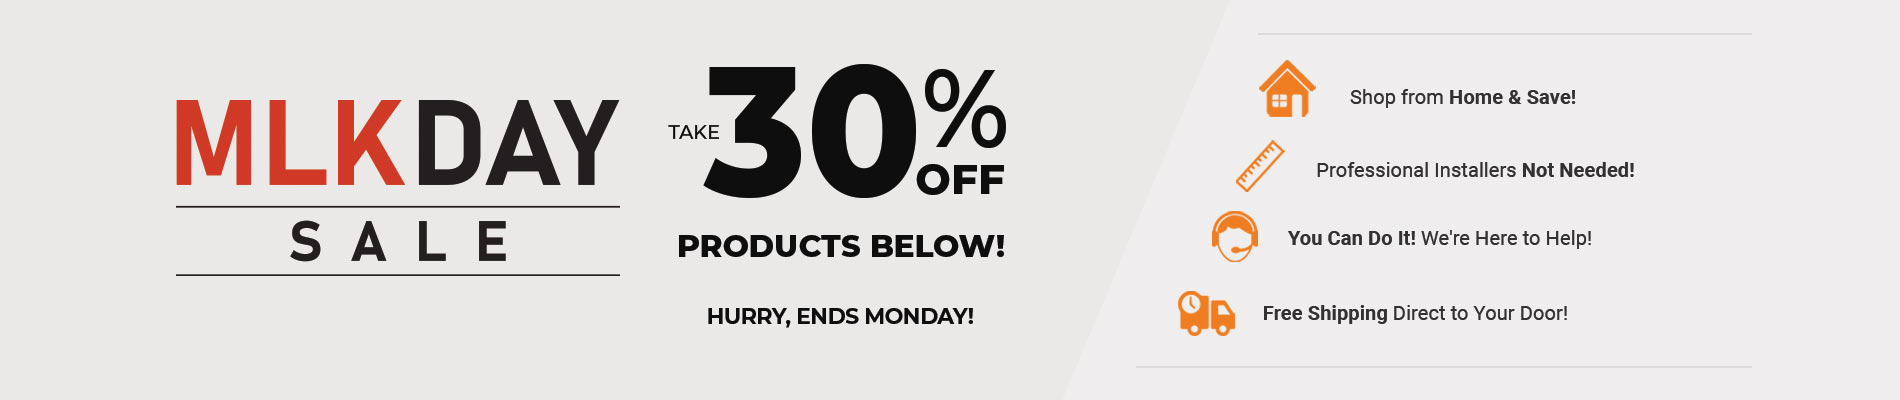 Save 30% on All Products Below